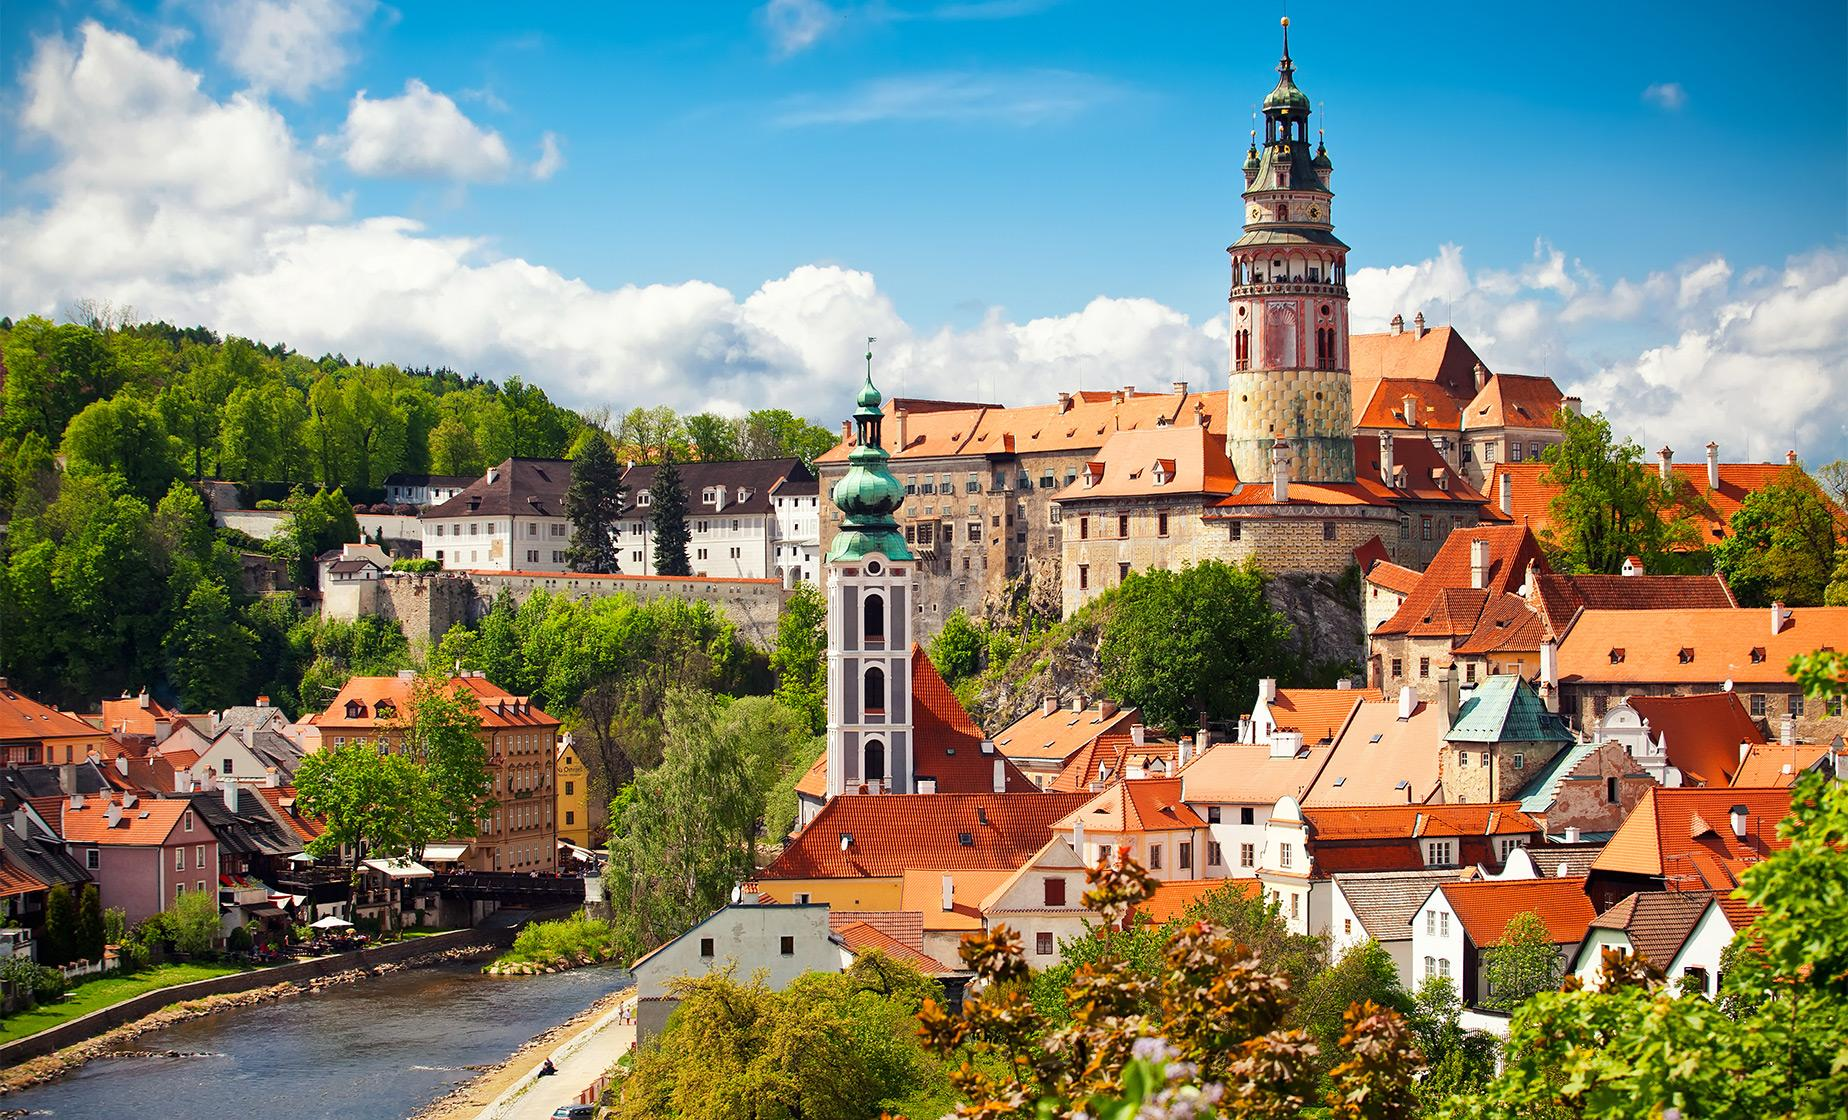 Private Tour to Cesky Krumlov from Melk - On Your Own